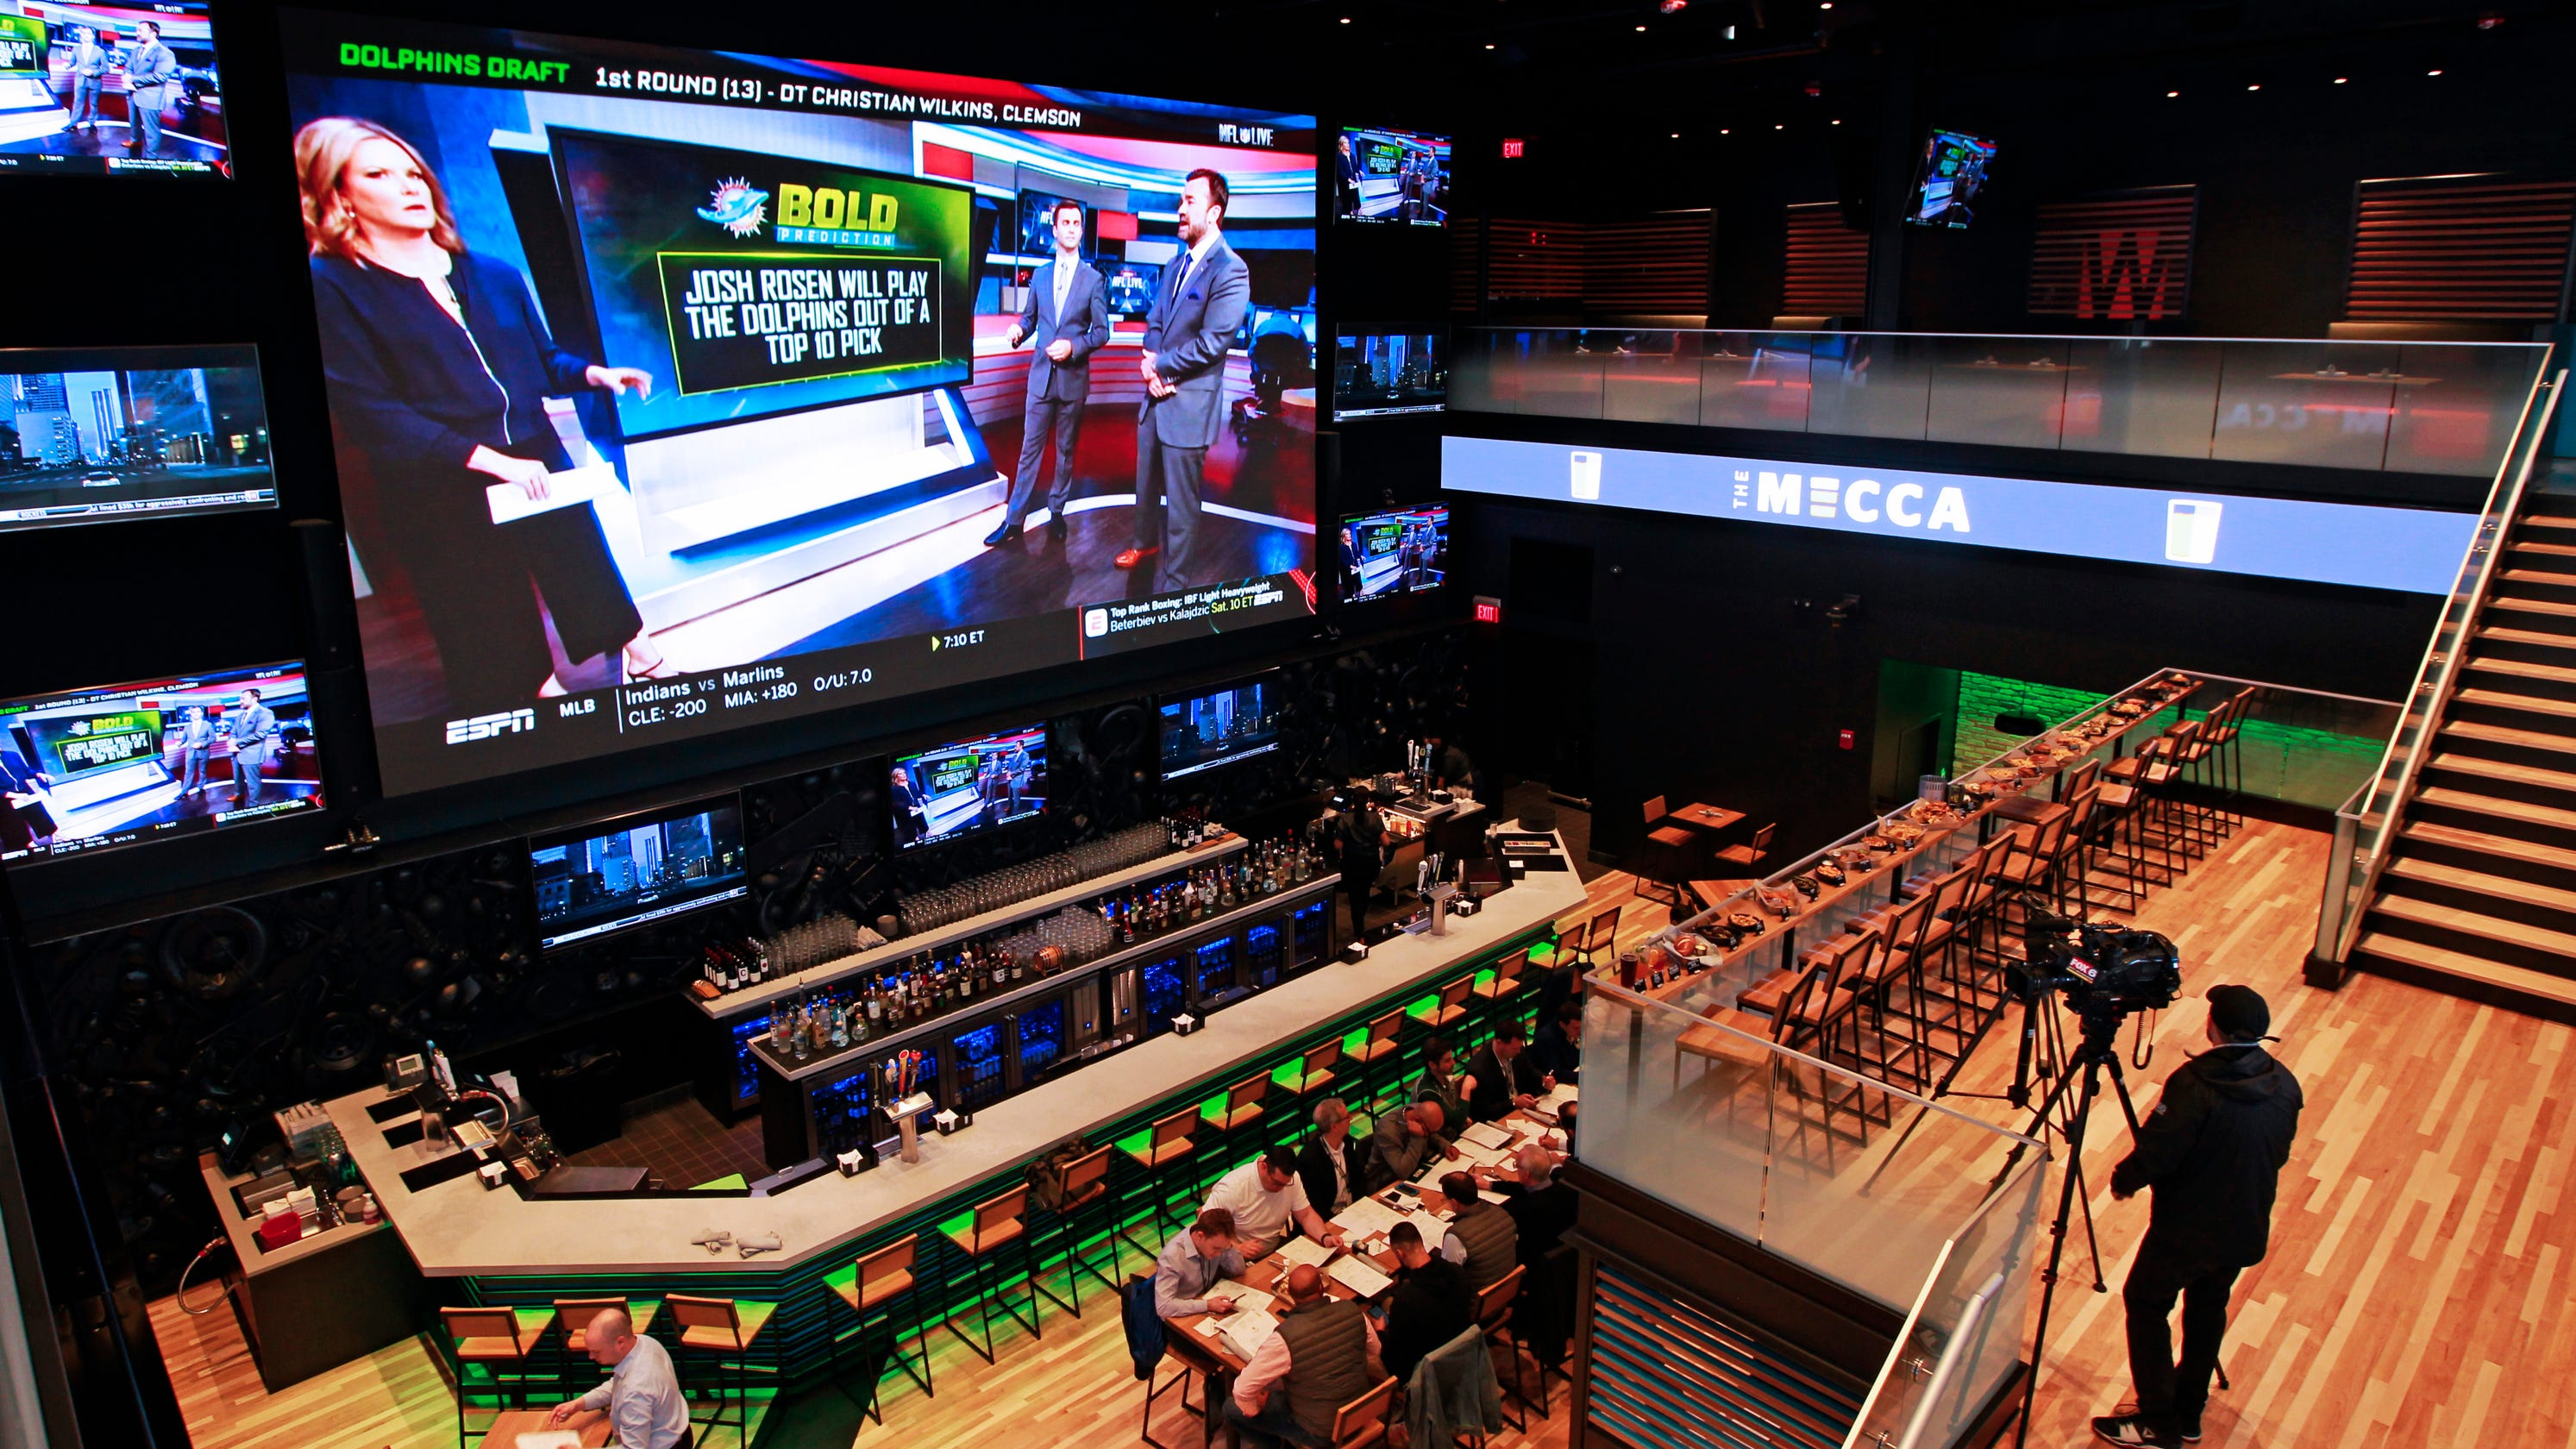 The Mecca Sports Bar And Grill The Final Bar Across From Fiserv Forum Has A 38 Foot Screen That Spans 2 Floors The 5th News